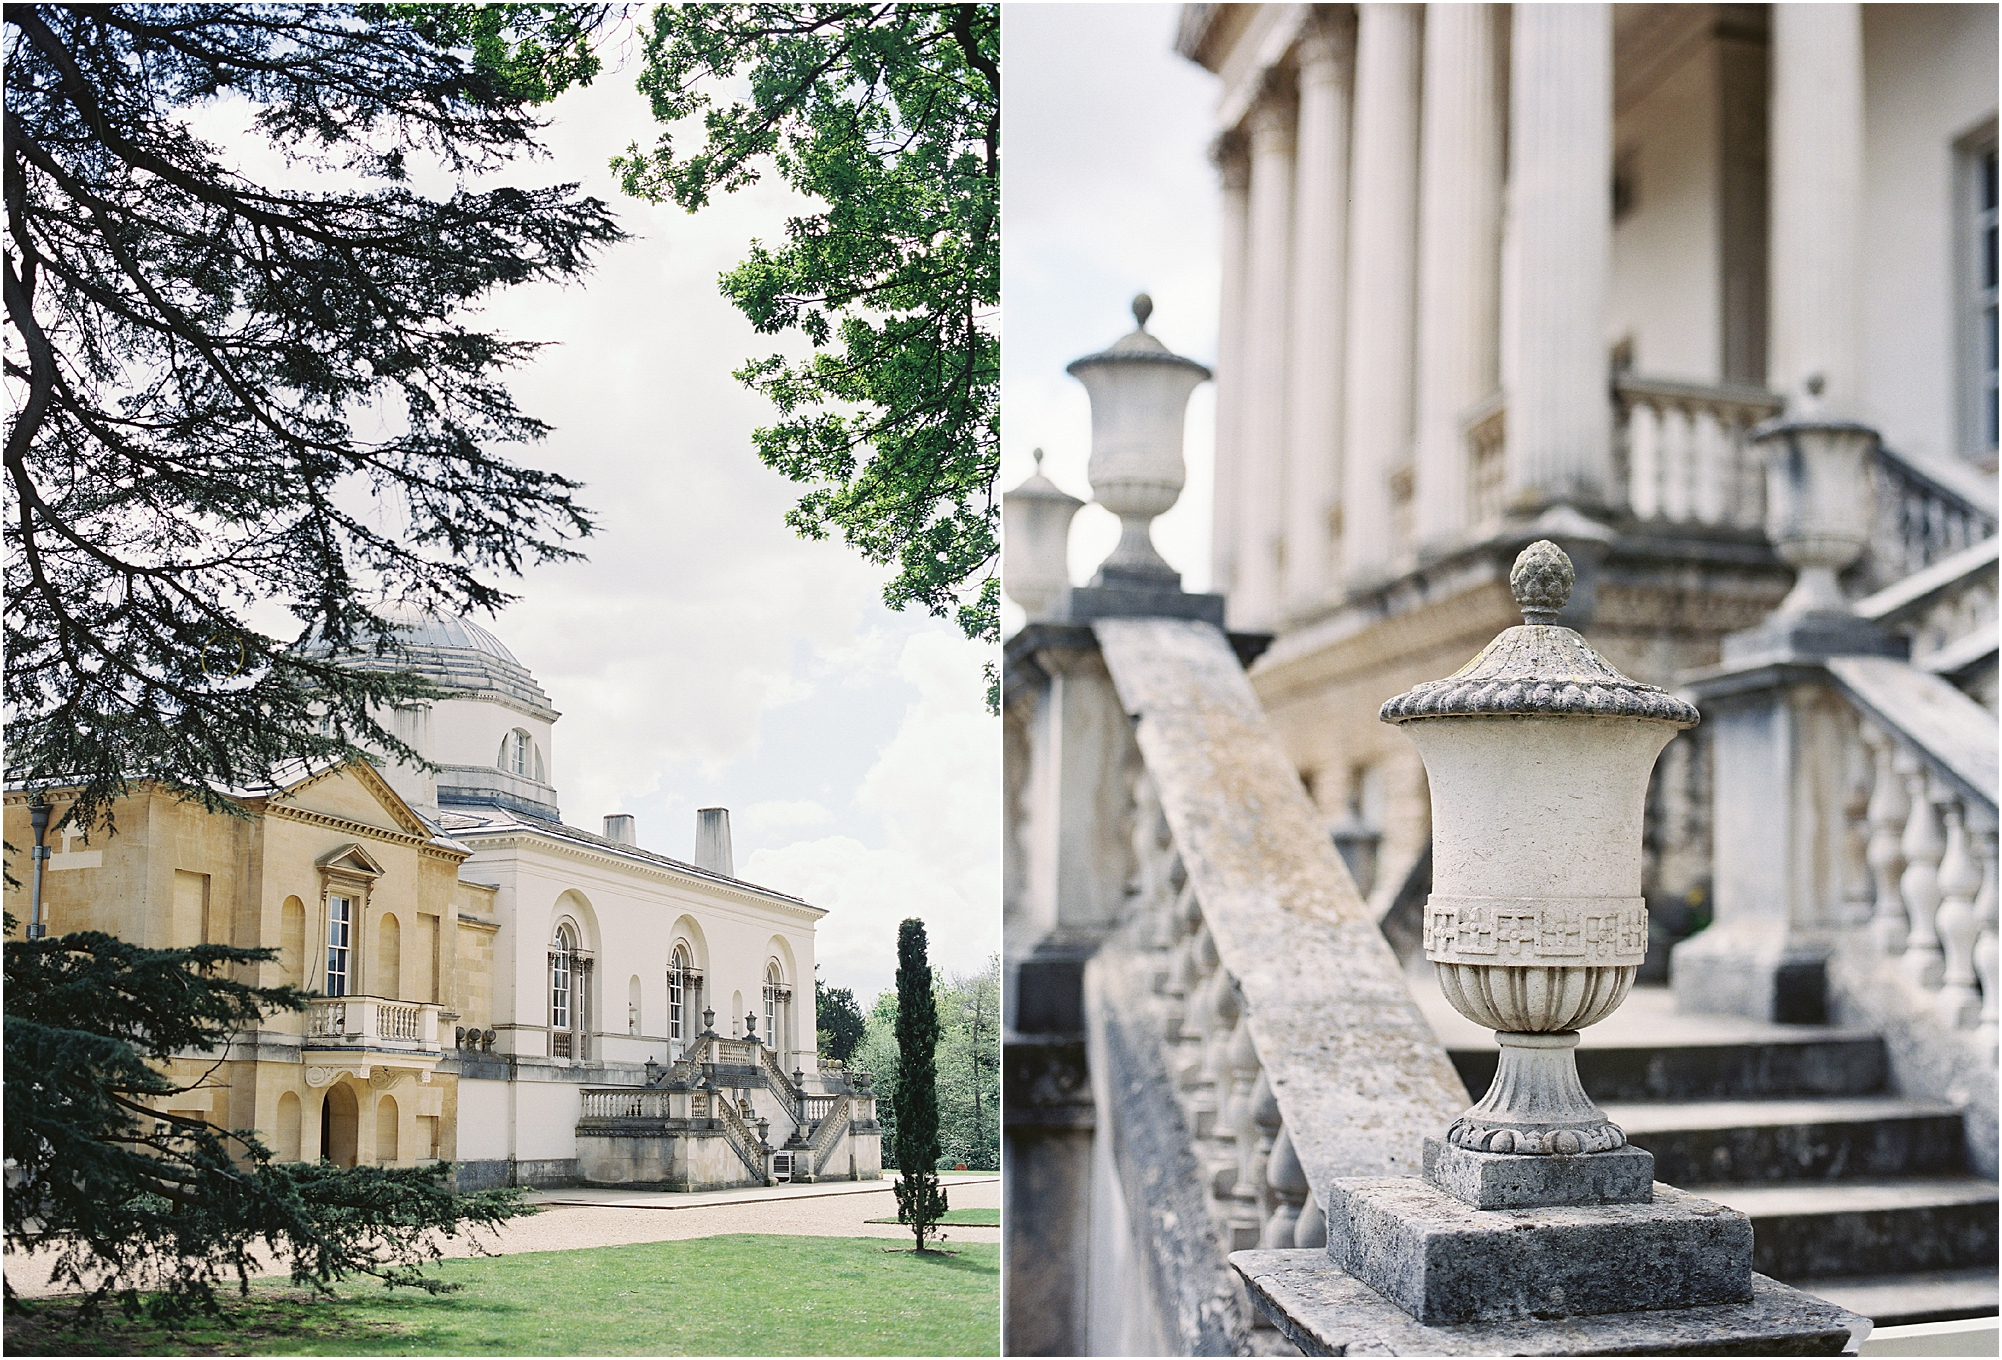 18th century architecture at Chiswick House wedding